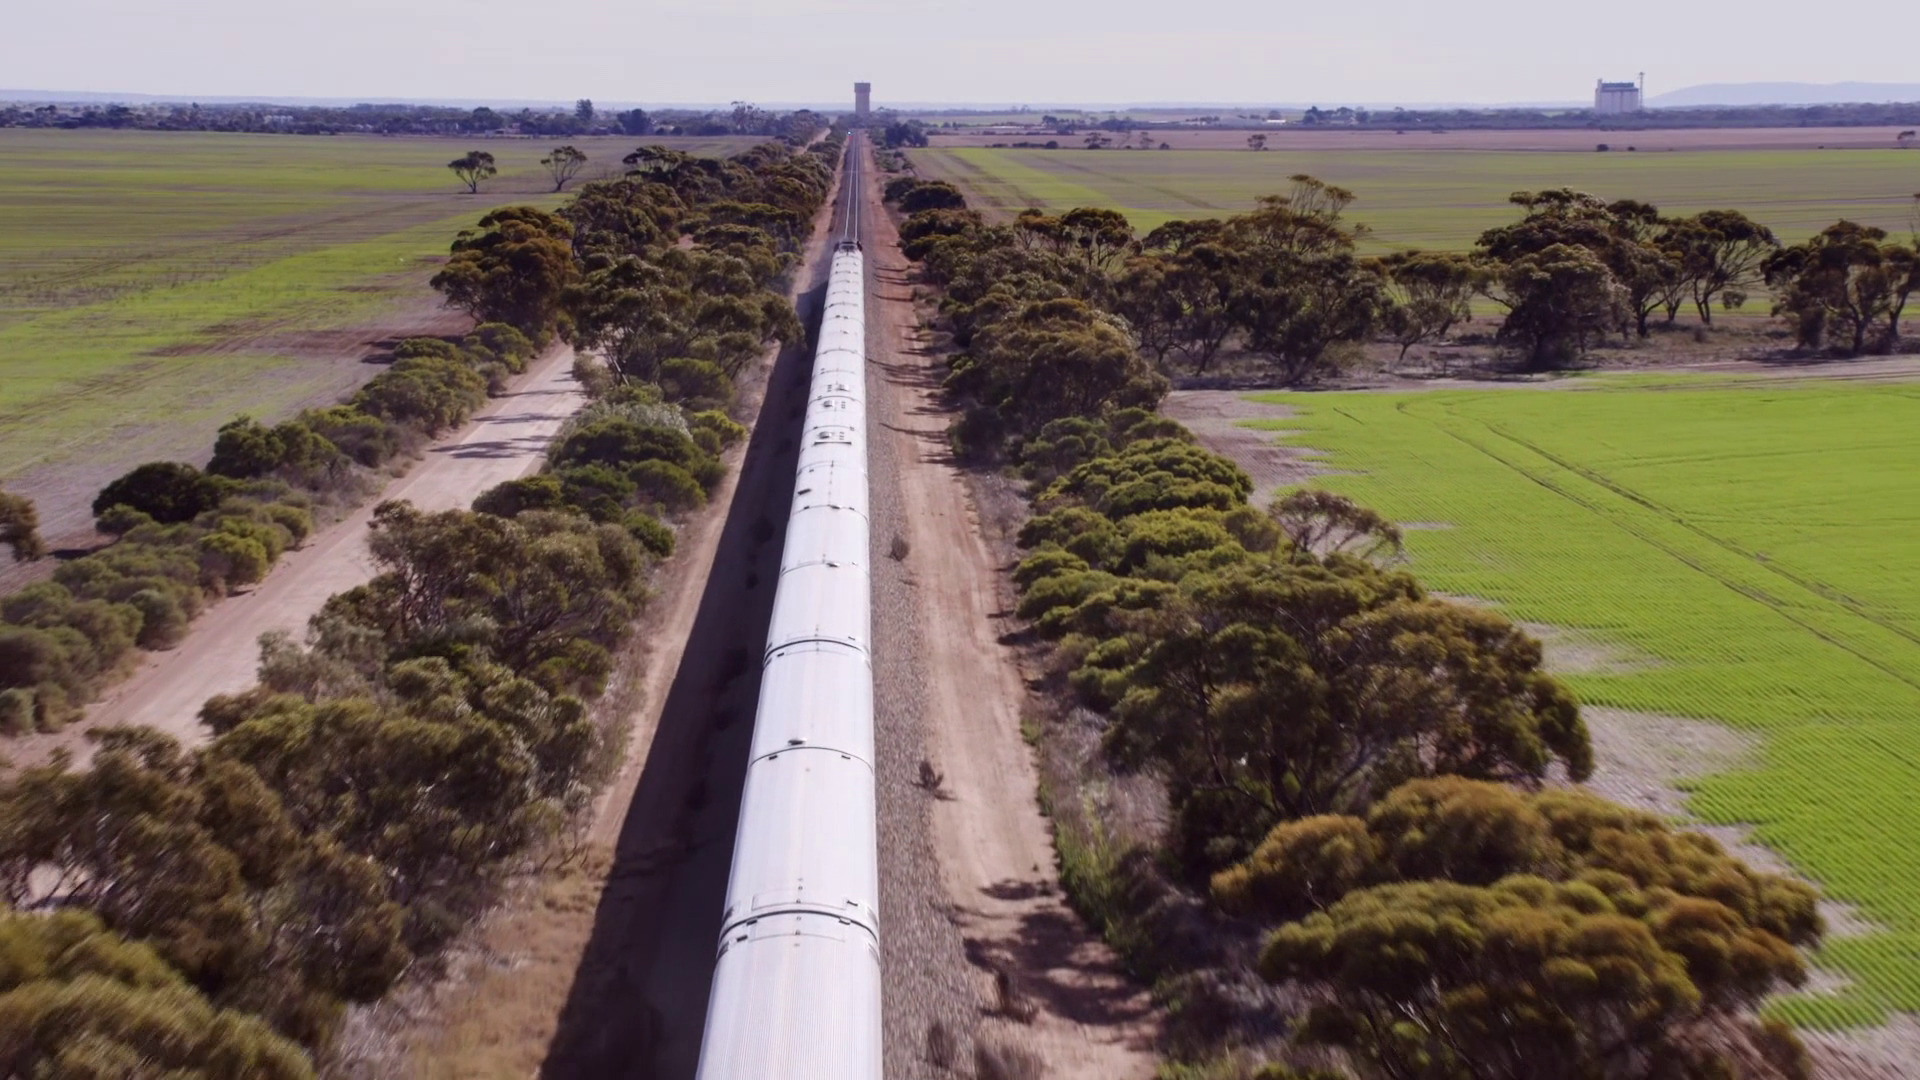 The Ghan Australias Greatest Train Journey 2018 1080p BluRay DD5.1 x264-GHOULS